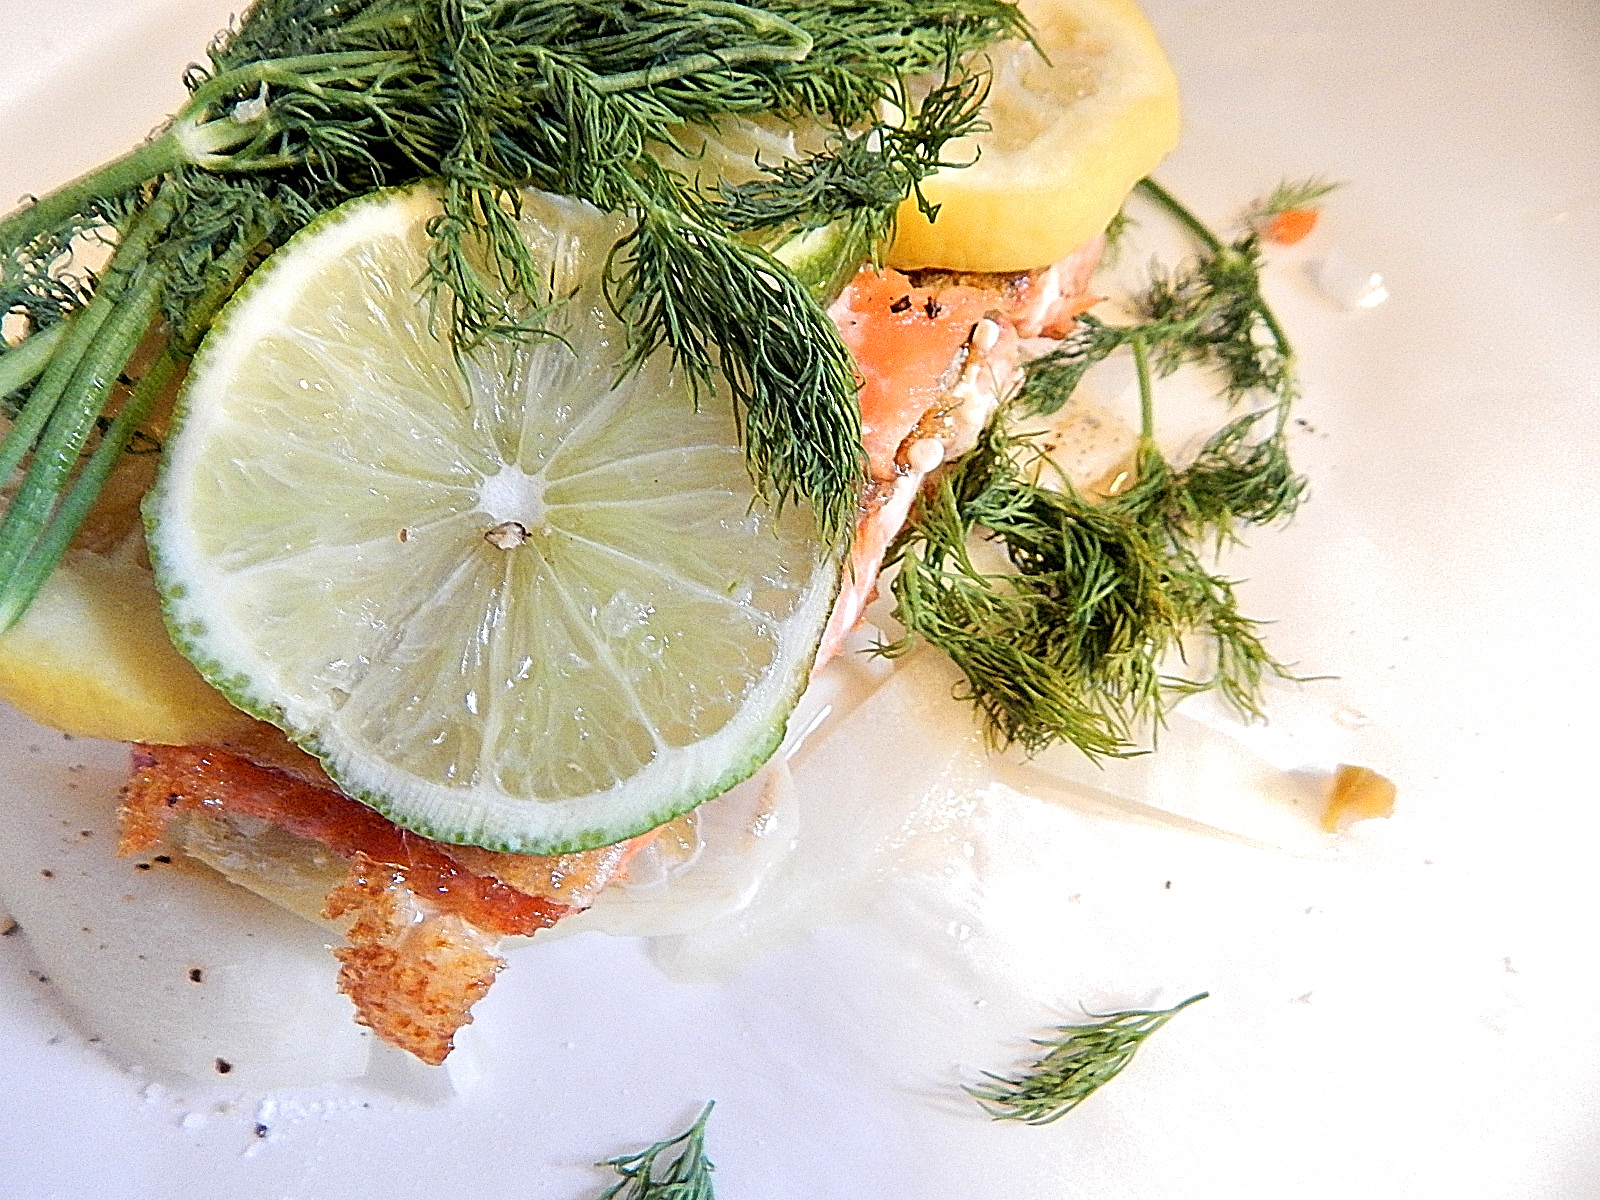 Seared salmon with lime lemon & dill